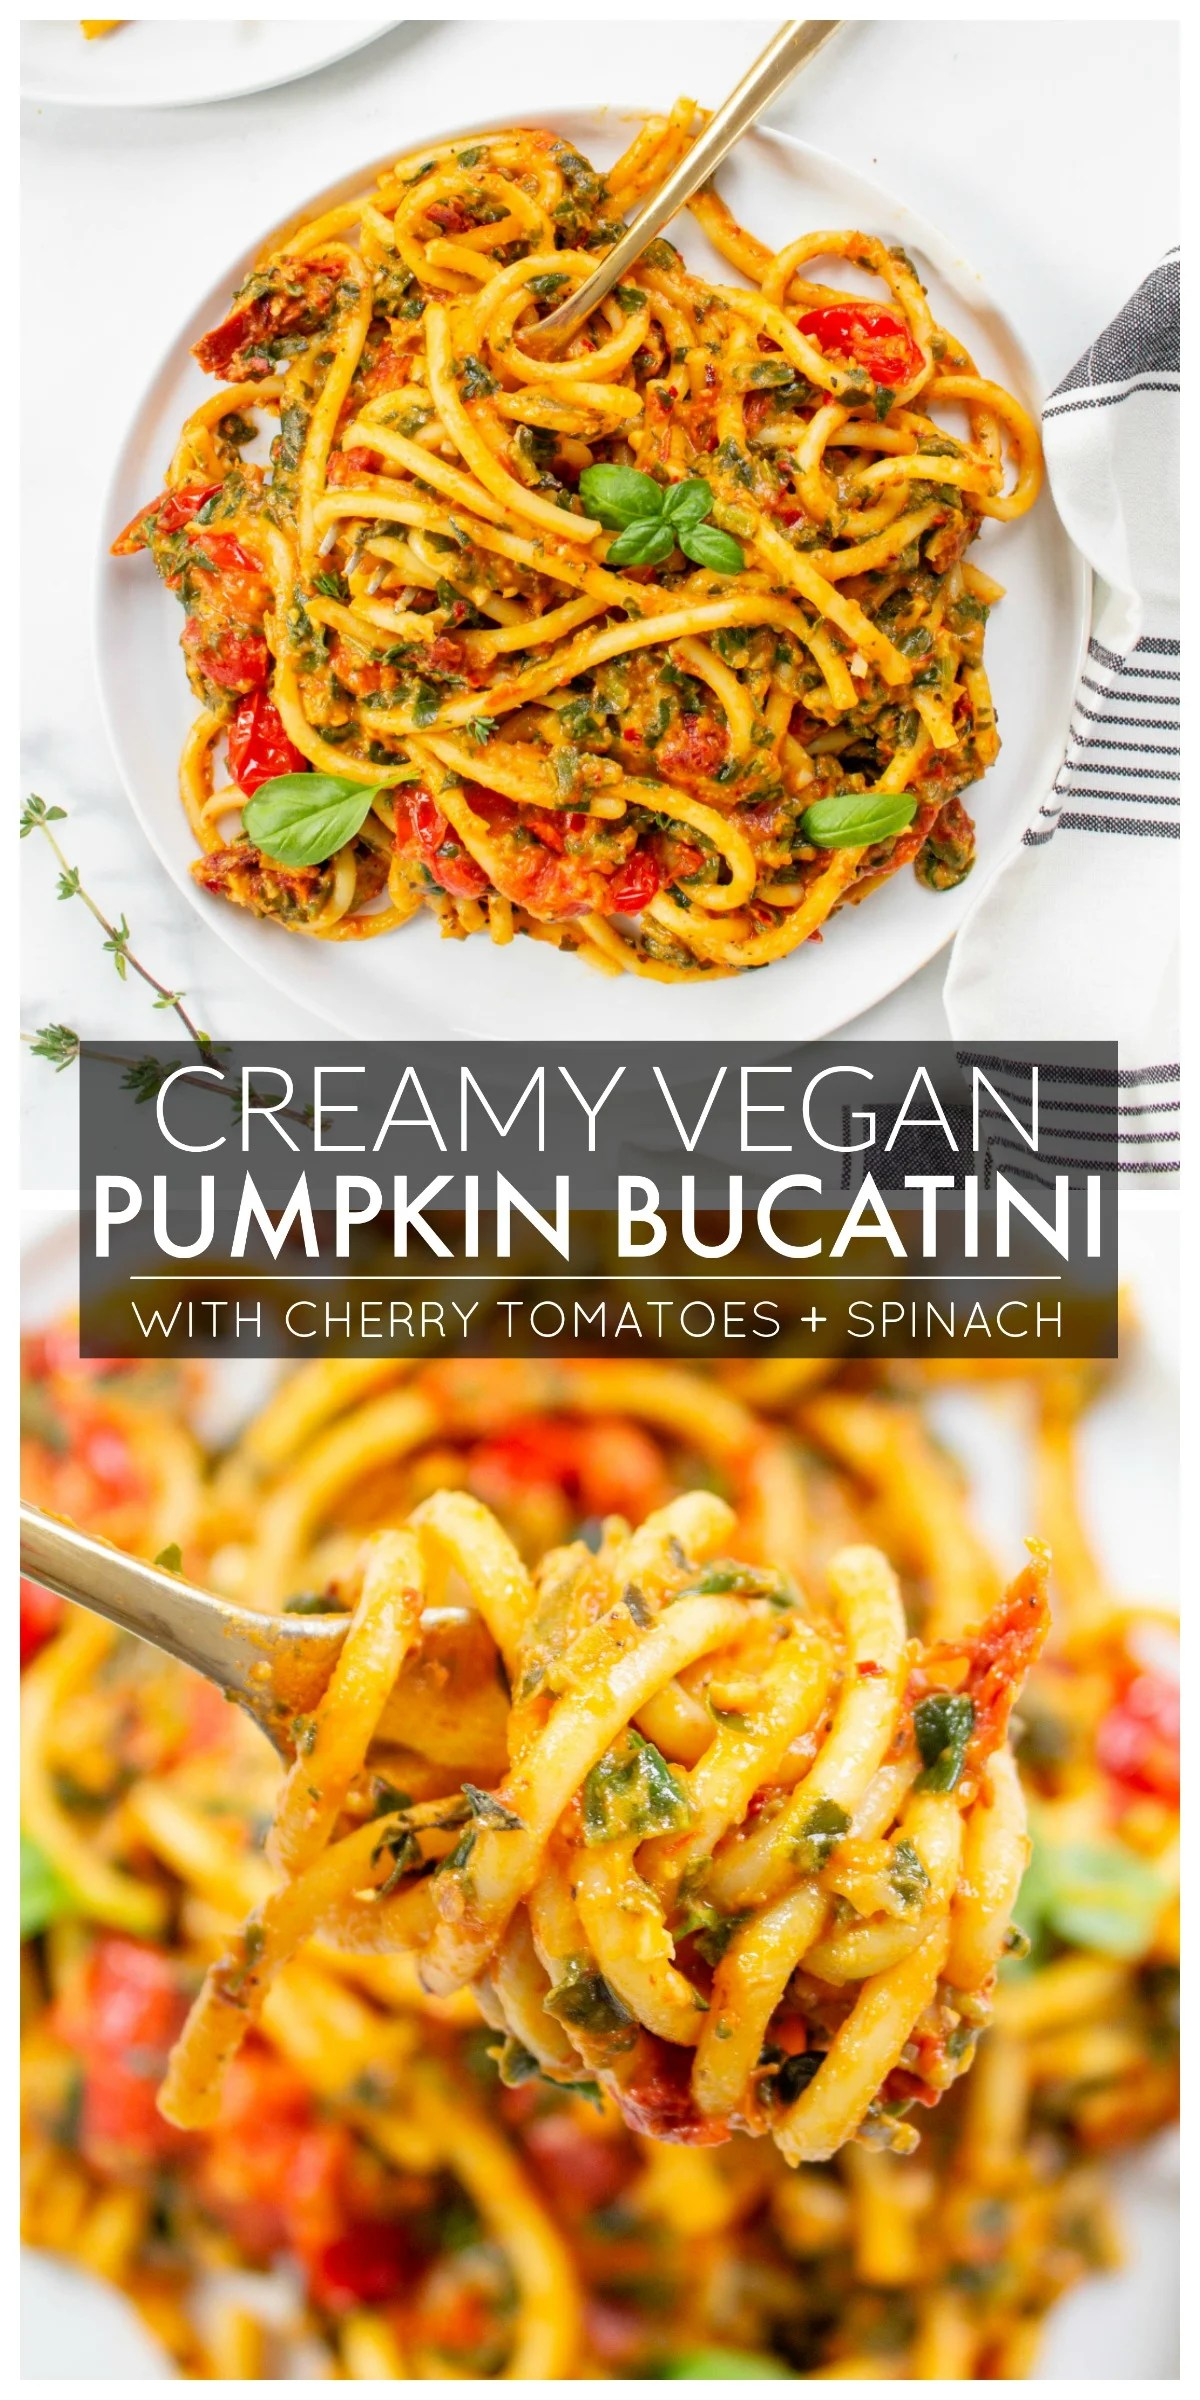 This Creamy Vegan Pumpkin Bucatini is filled with cherry tomatoes, spinach and garlic. It is lightened up by using pumpkin puree and hummus for the creamy sauce | ThisSavoryVegan.com #thissavoryvegan #veganpasta #pumpkinpasta